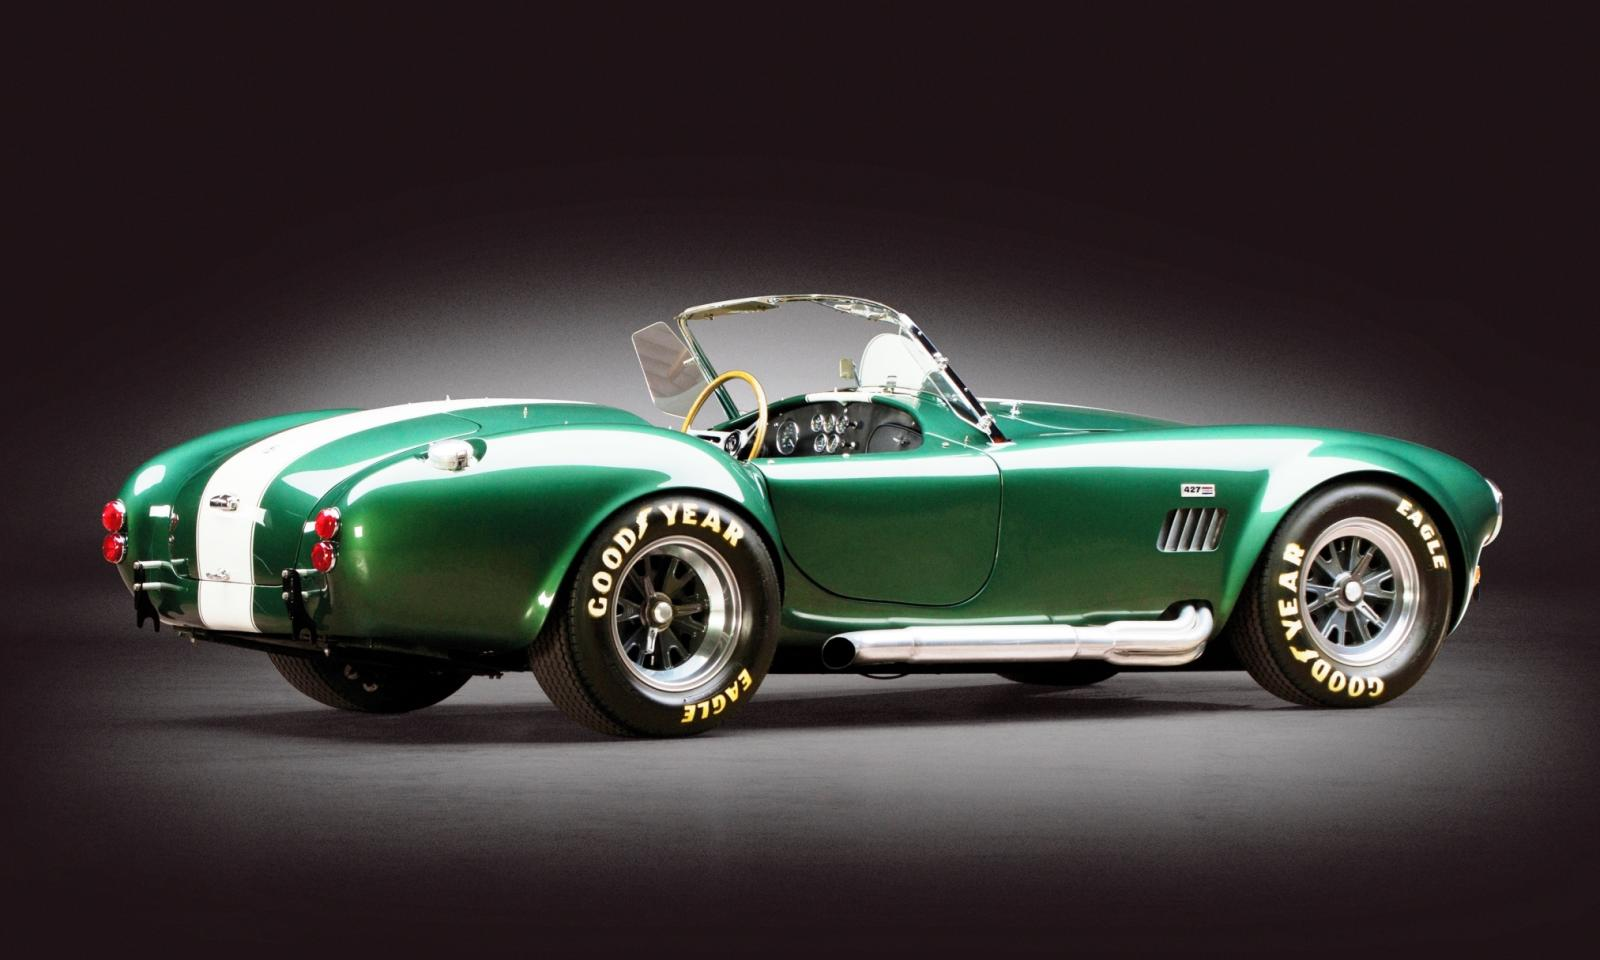 Rm Dallas Preview - ORIGINAL 1967 Shelby 427 Cobra Estimated at $1MM+ 2